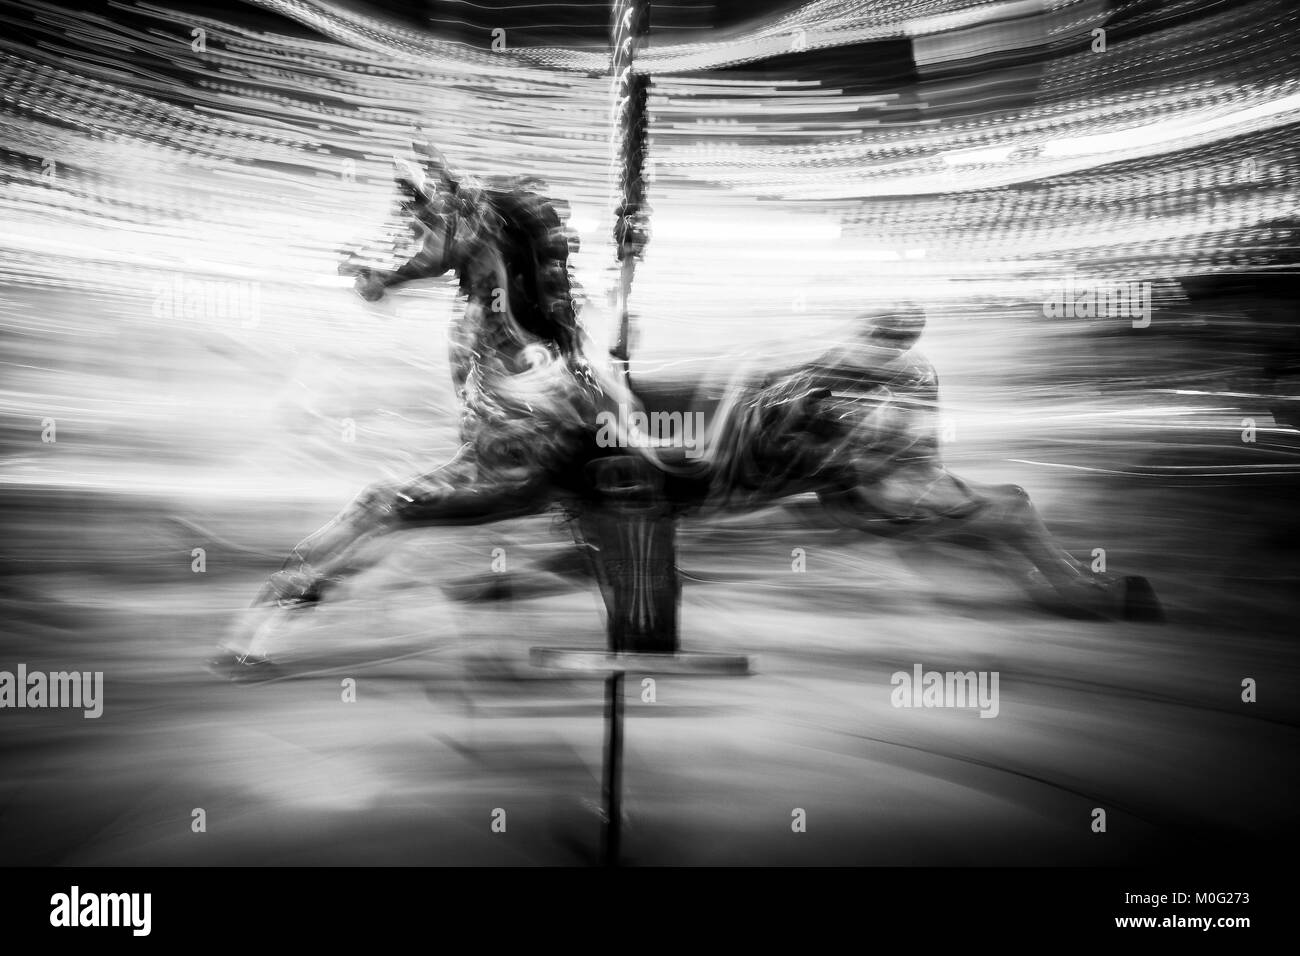 London black and white street photography carousel horse